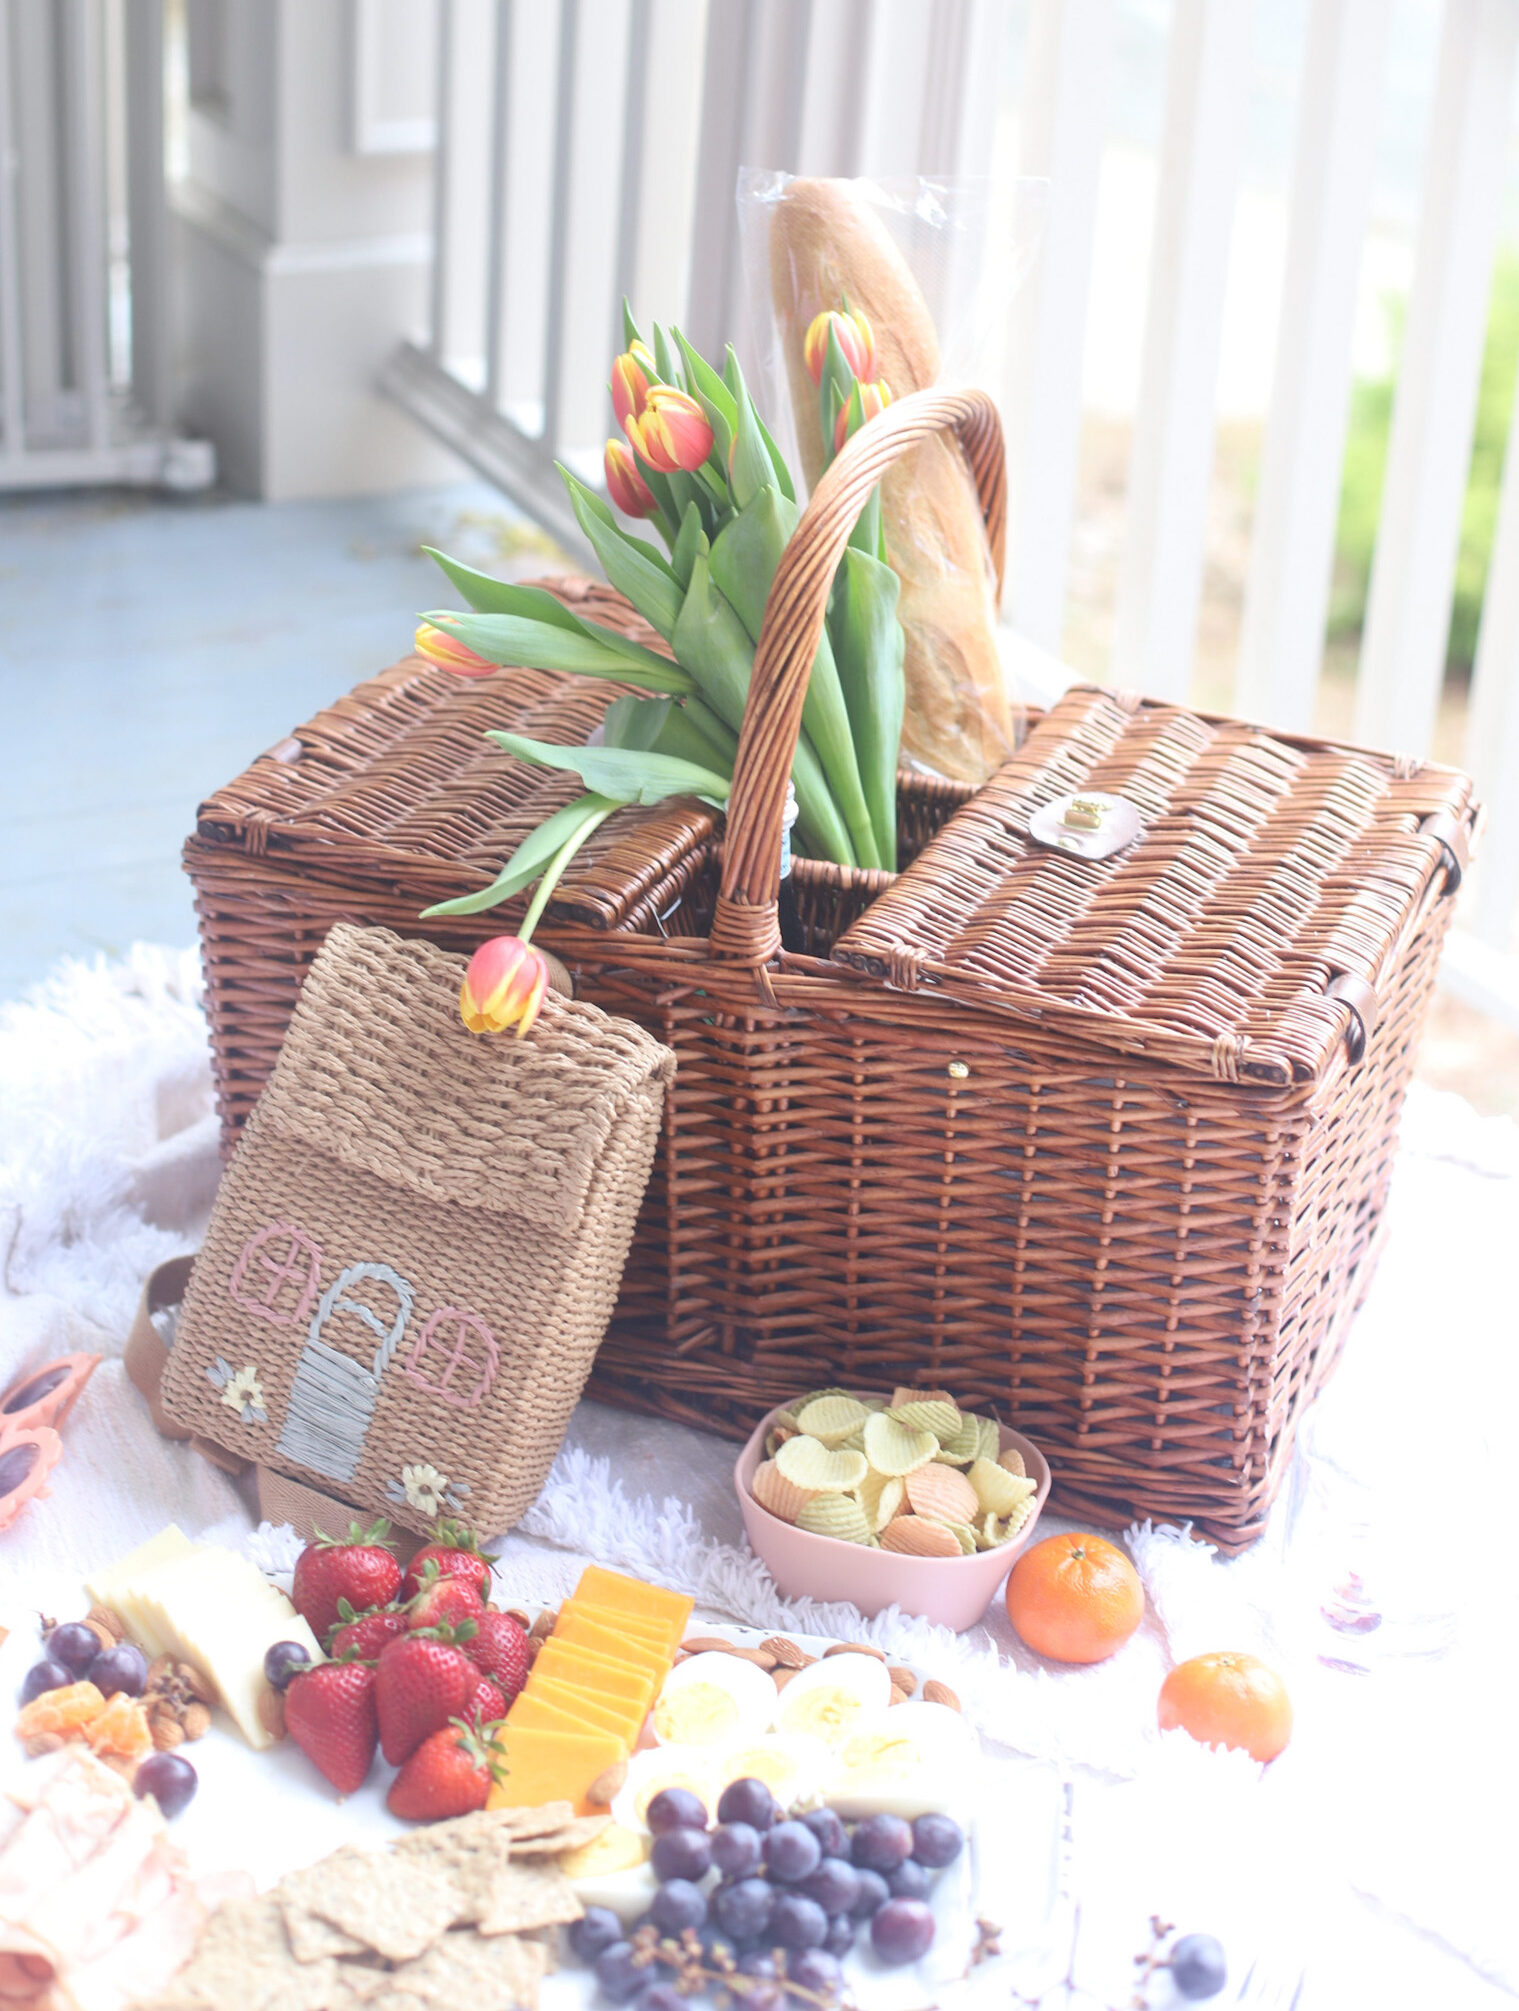 a picnic basket surrounded by fruits, cheese, and crackers